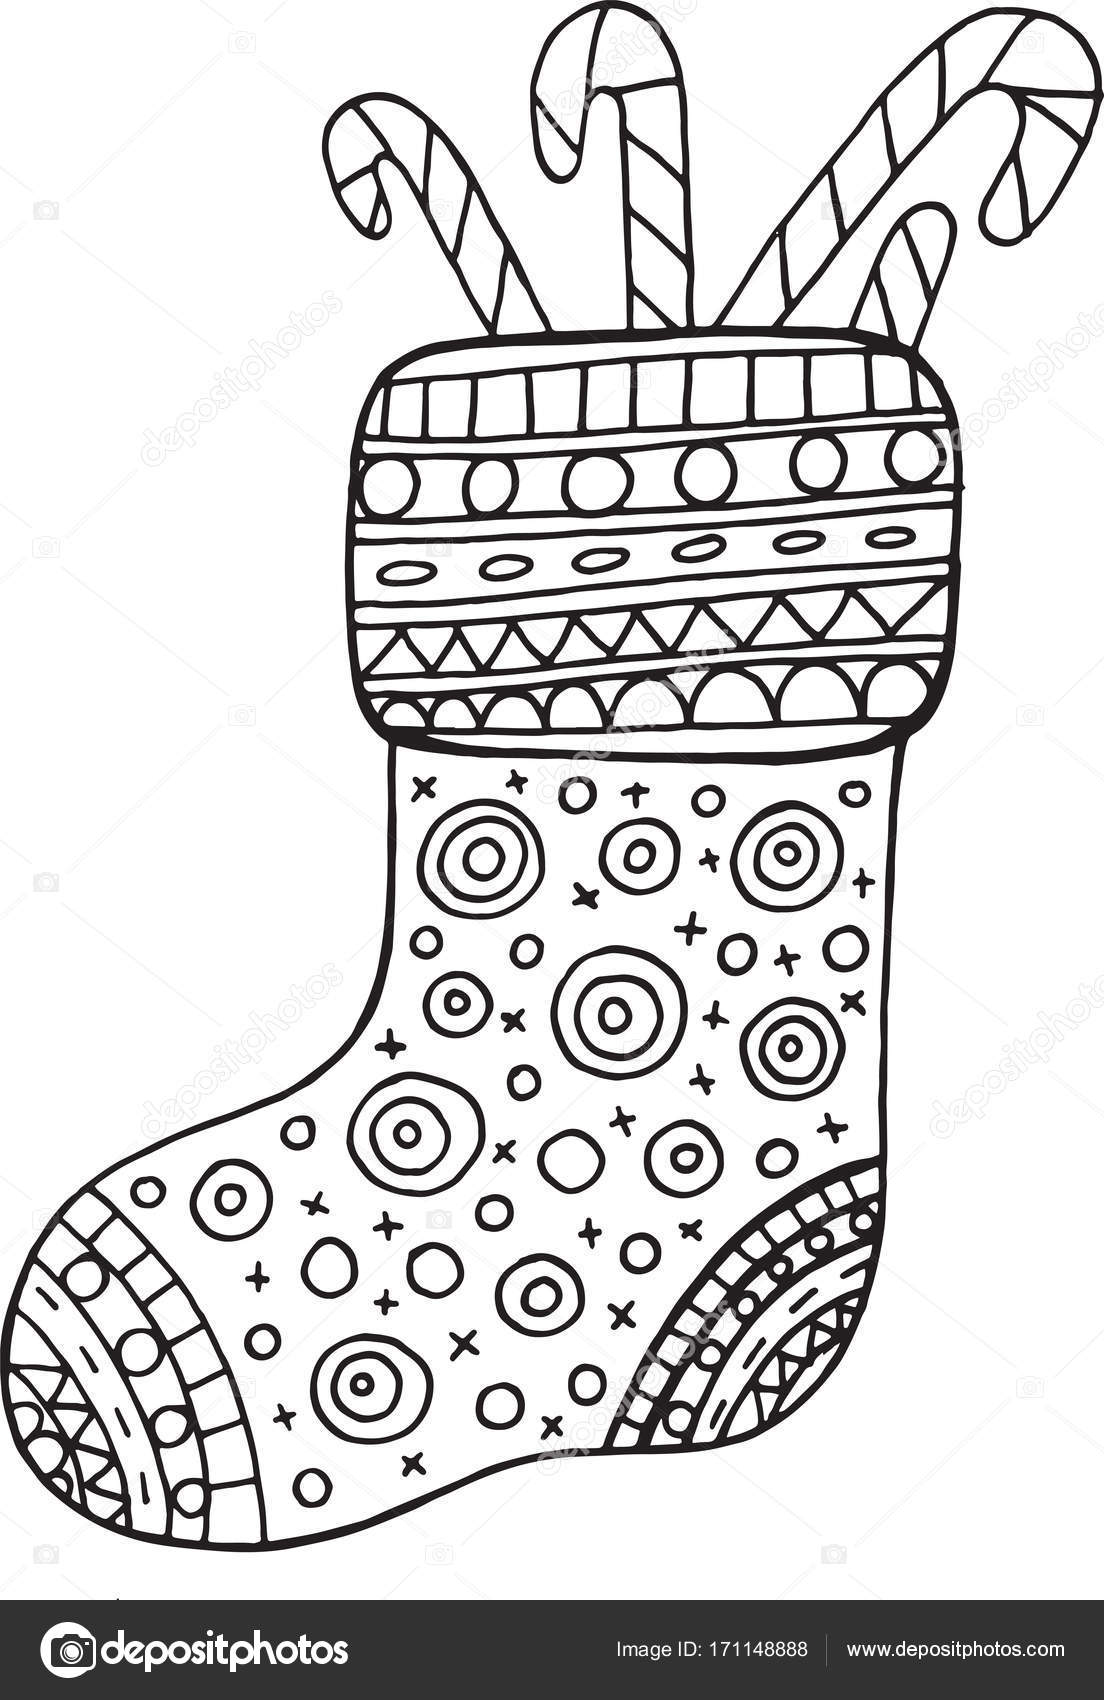 Christmas Boot Coloring Page For Adults And Kids Vector Illustr